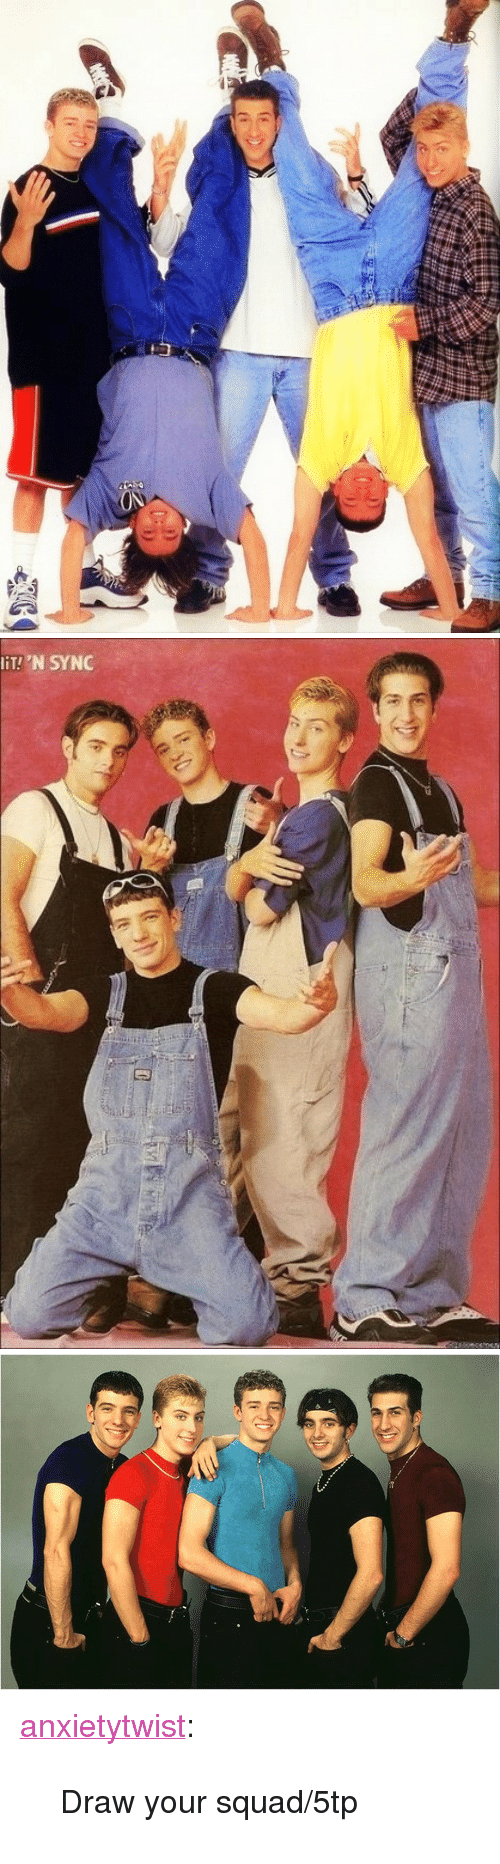 """Lit, Squad, and Tumblr: liT!'N SYNC <p><a class=""""tumblr_blog"""" href=""""http://anxietytwist.tumblr.com/post/128832897528"""">anxietytwist</a>:</p> <blockquote> <p>Draw your squad/5tp</p> </blockquote>"""